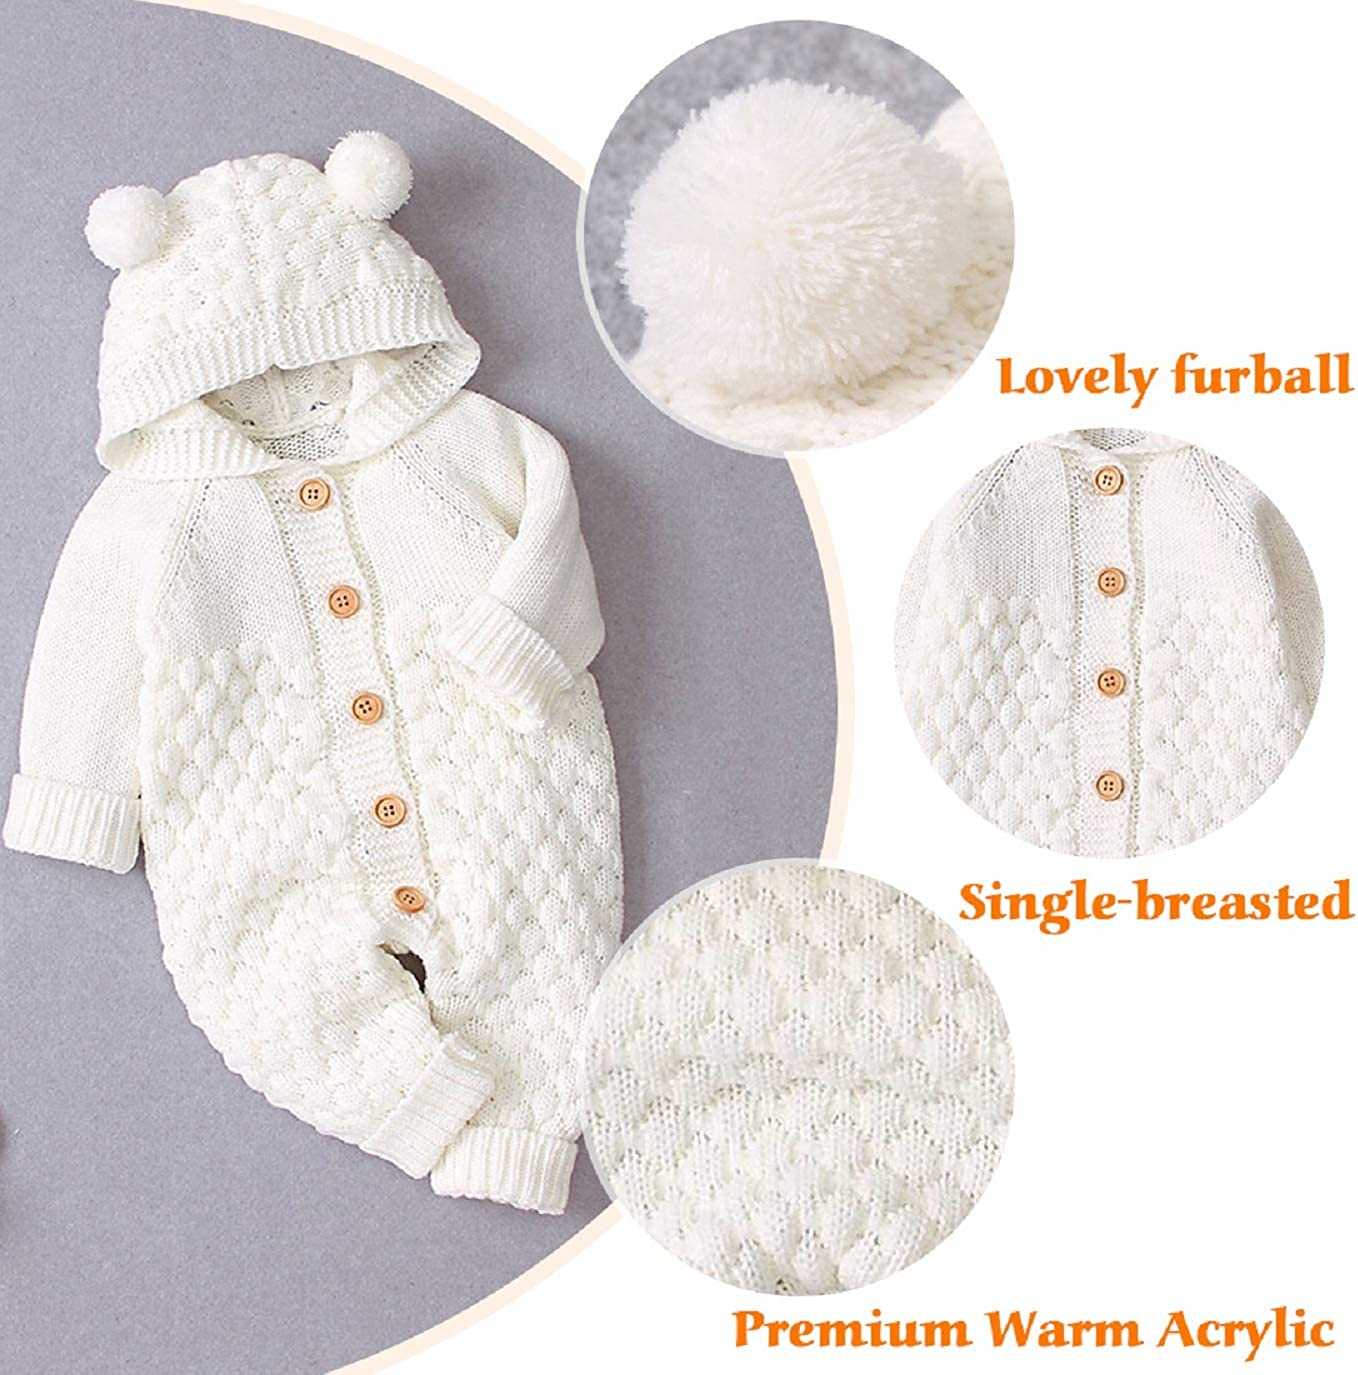 UMIPUBO Toddler Baby Hooded Knitted Rompers Newborn Girls Boys Onesies  Winter Warm Button Sweater Jumpsuit Outfits 3-24 Months Baby Clothing  Bodysuits & One-Pieces